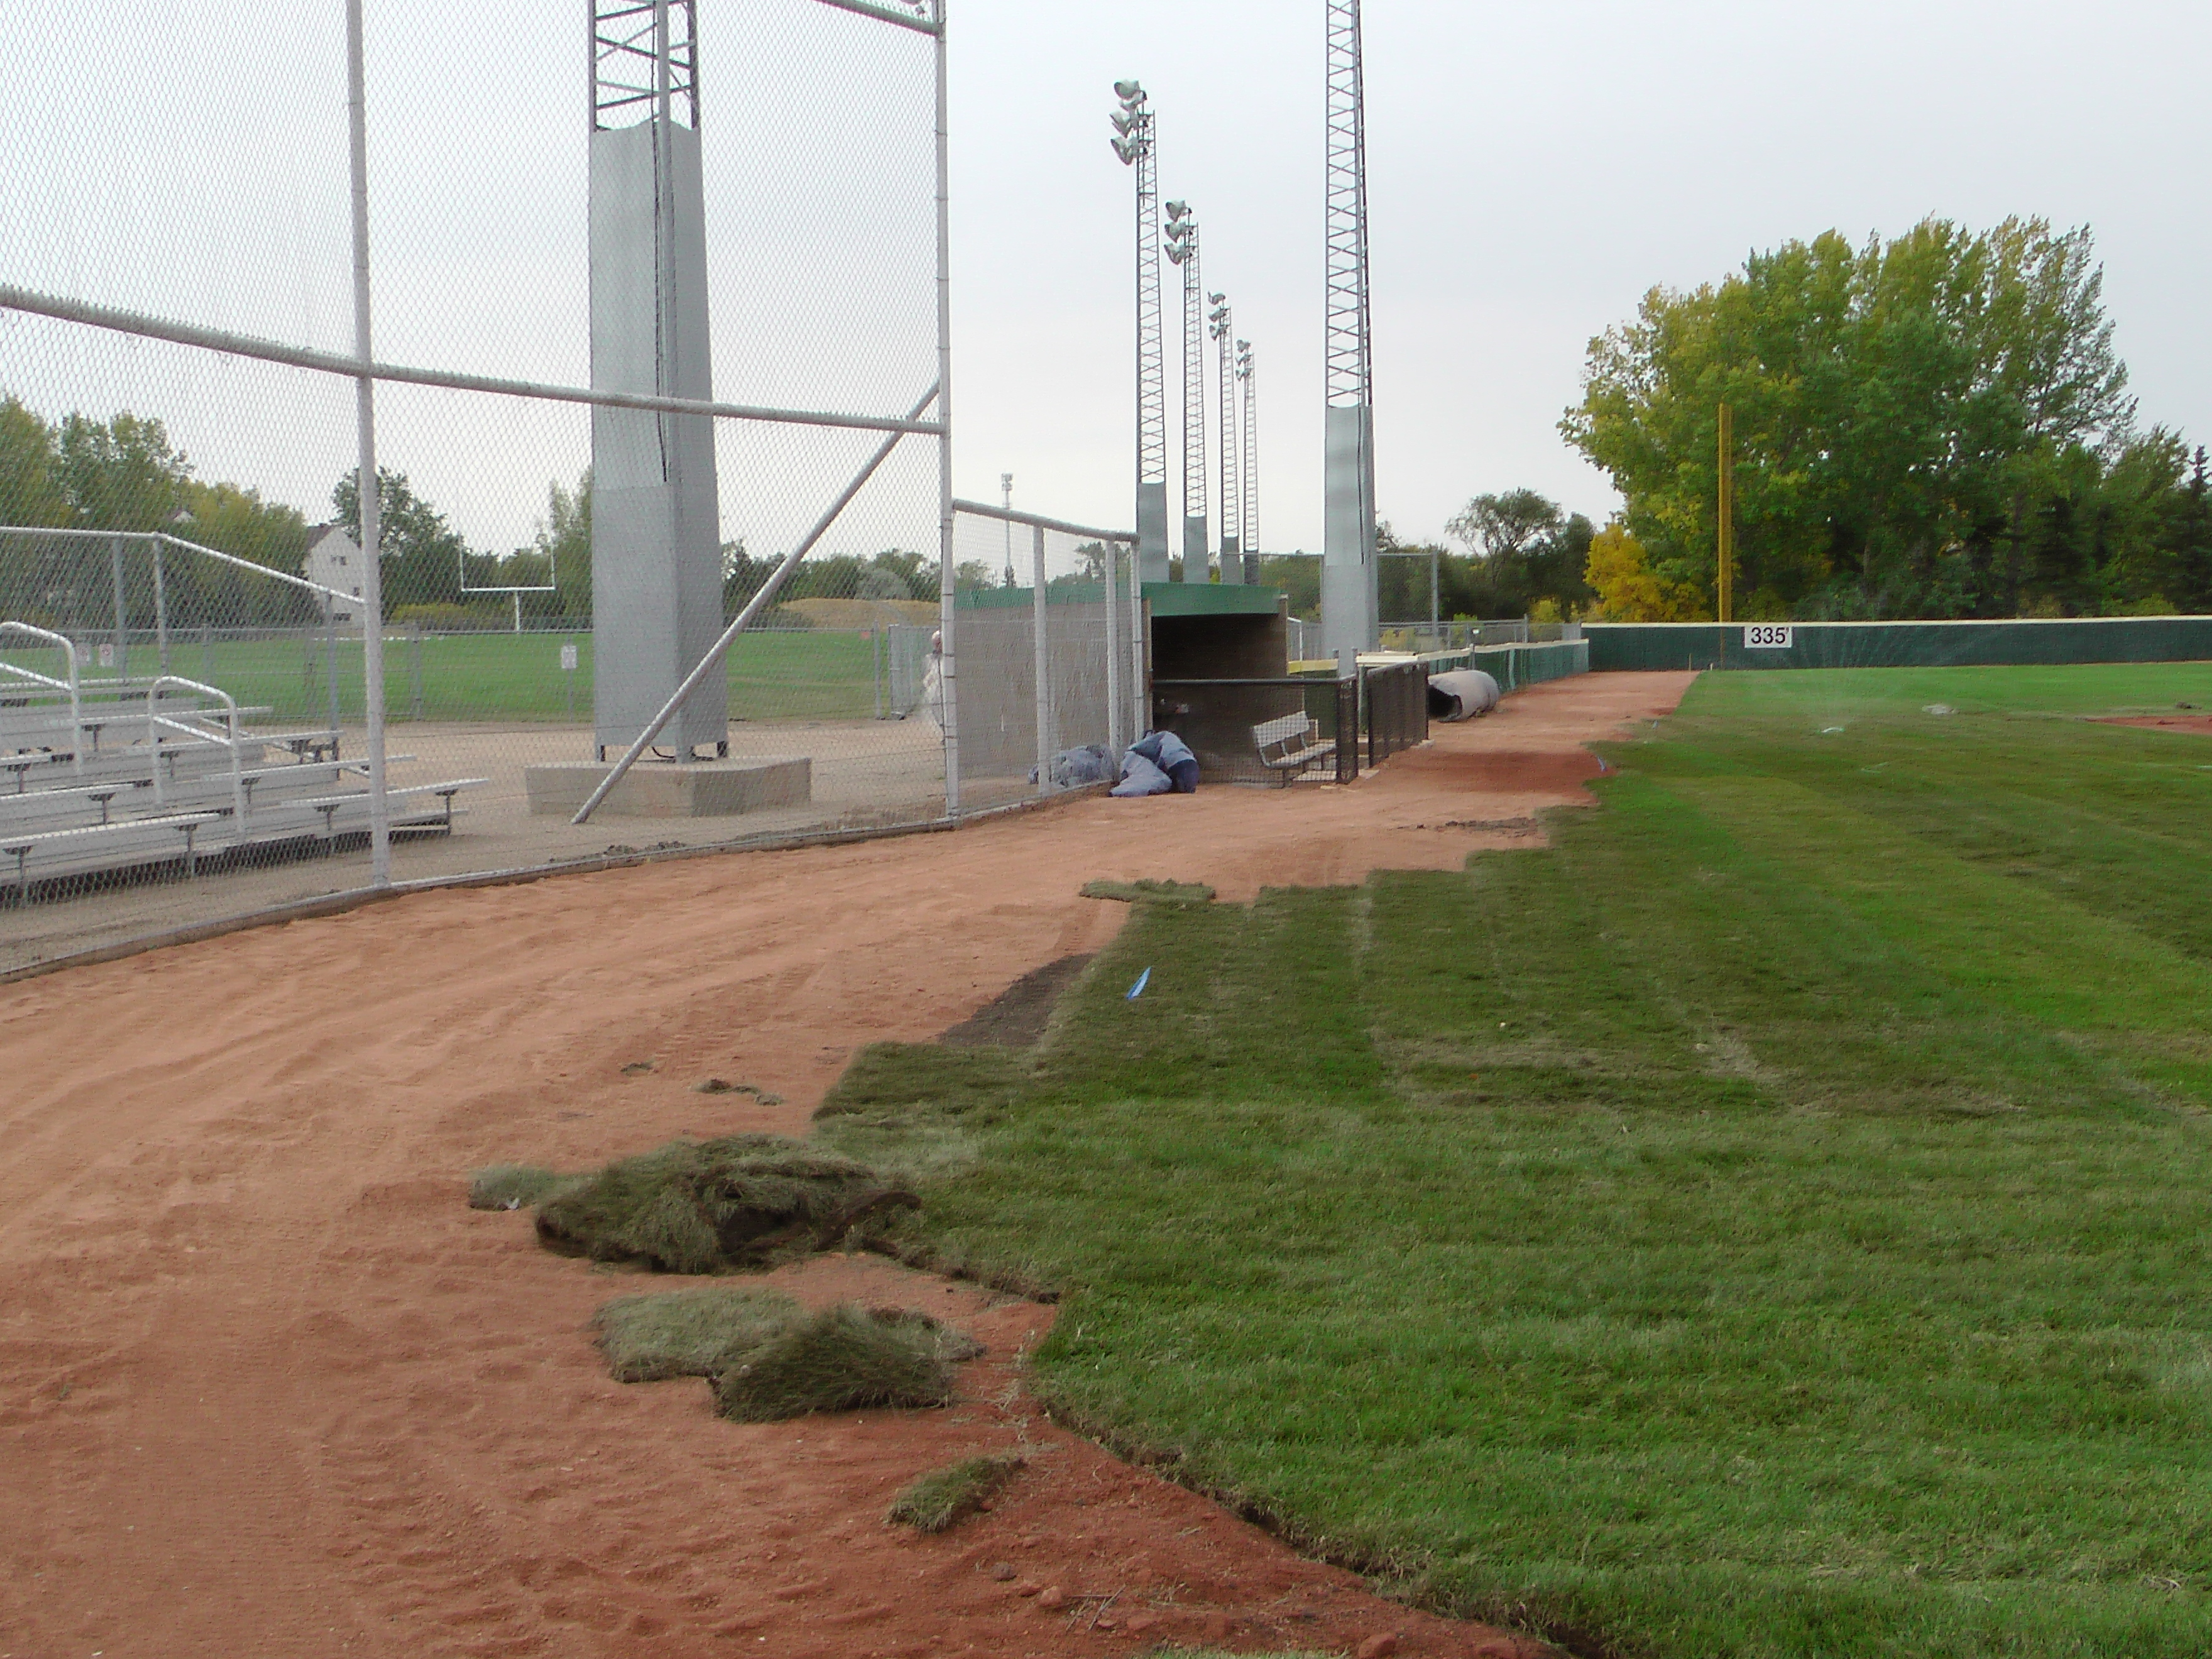 Sept 7 & 8 2018, Optimist Park Field Renovations, sod down being watered - Image 18